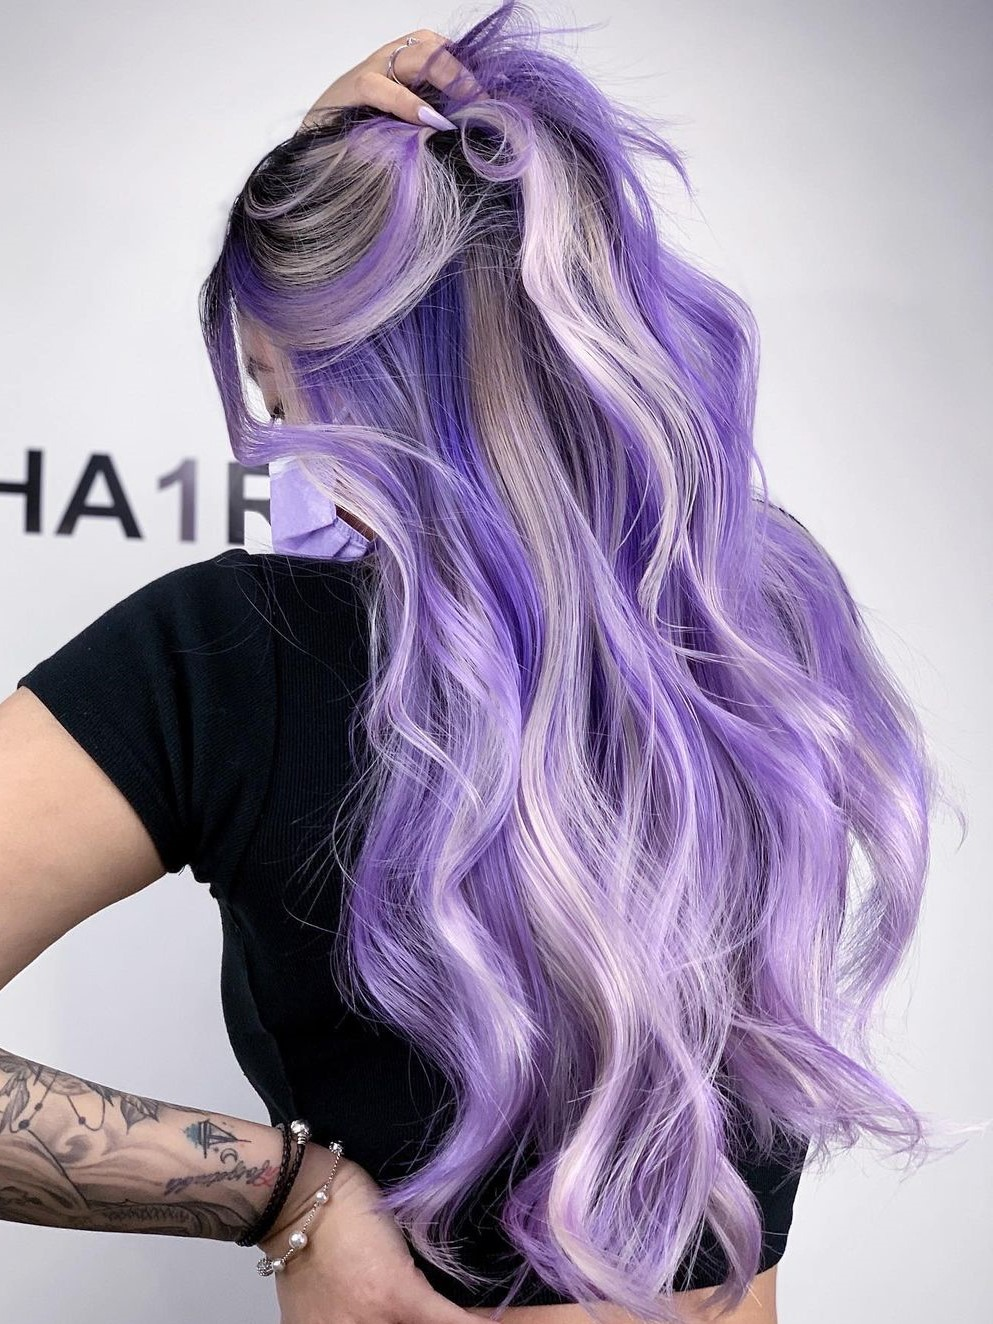 Foxy Blonde and Purple Highlights